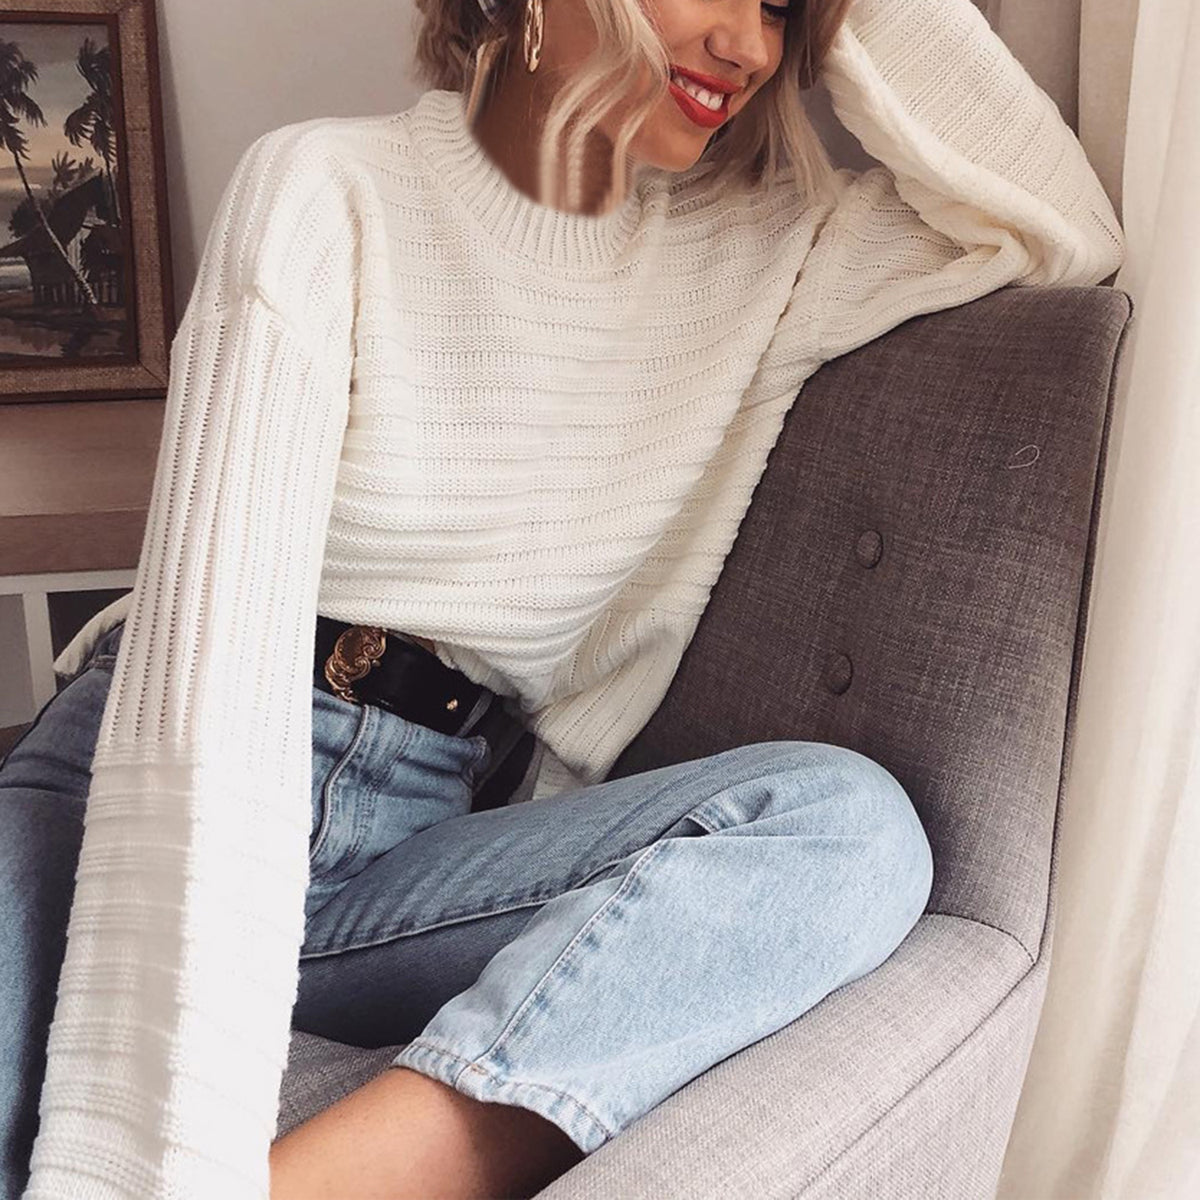 Textured Round Neck Knit Sweater - worthtryit.com